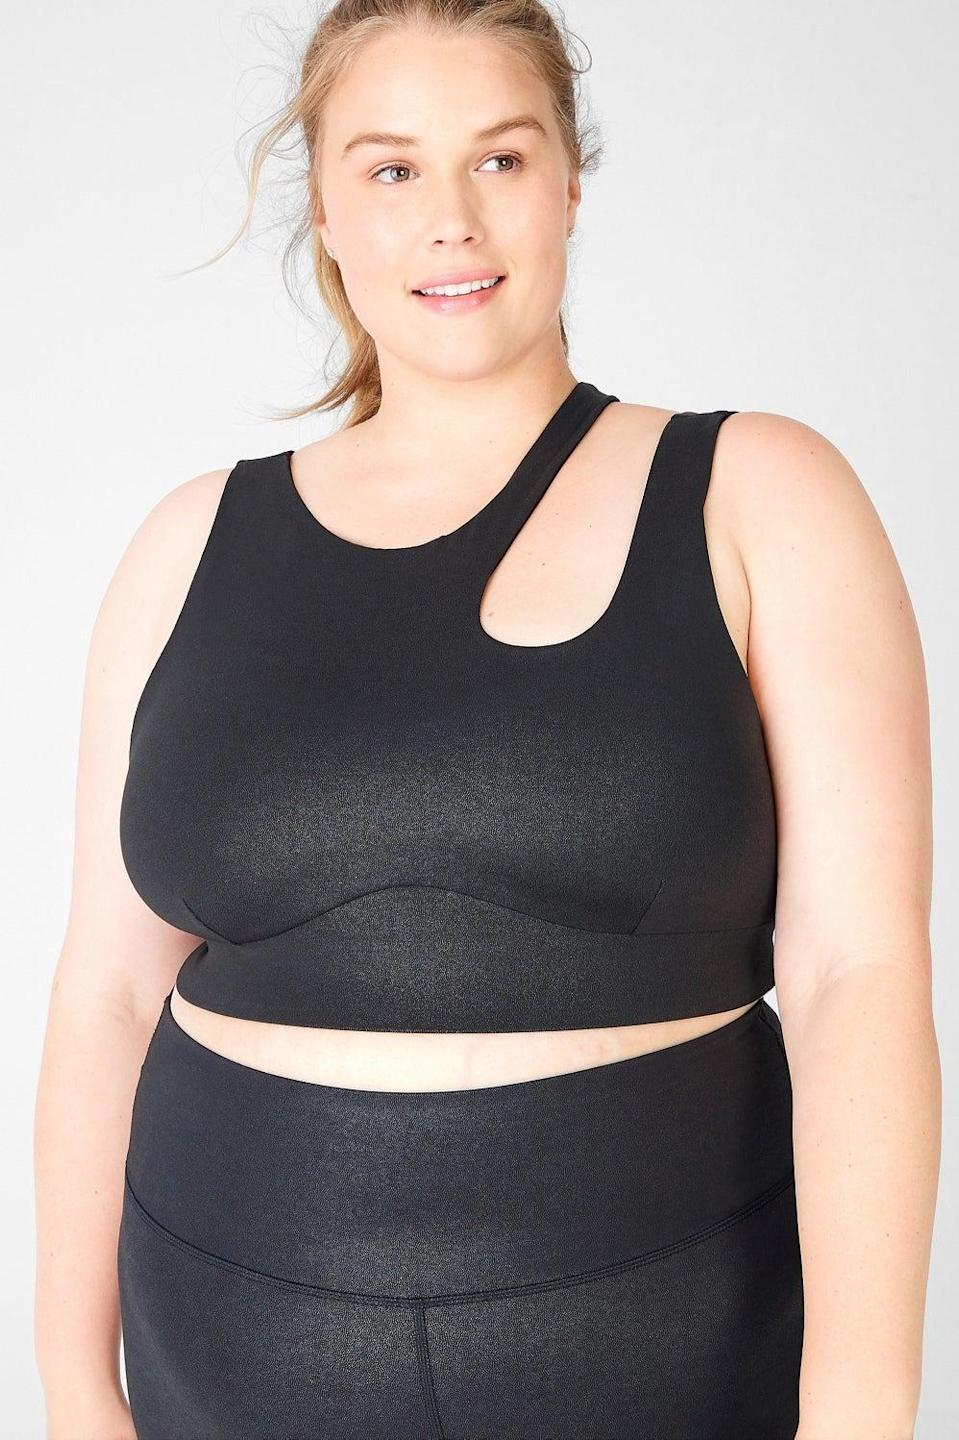 "<br><br><strong>Fabletics</strong> Callie Medium Impact Sports Bra, $, available at <a href=""https://www.fabletics.co.uk/products/CALLIE-MEDIUM-IMPACT-SPORTS-BRA-BA2044196-1195"" rel=""nofollow noopener"" target=""_blank"" data-ylk=""slk:Fabletics"" class=""link rapid-noclick-resp"">Fabletics</a>"